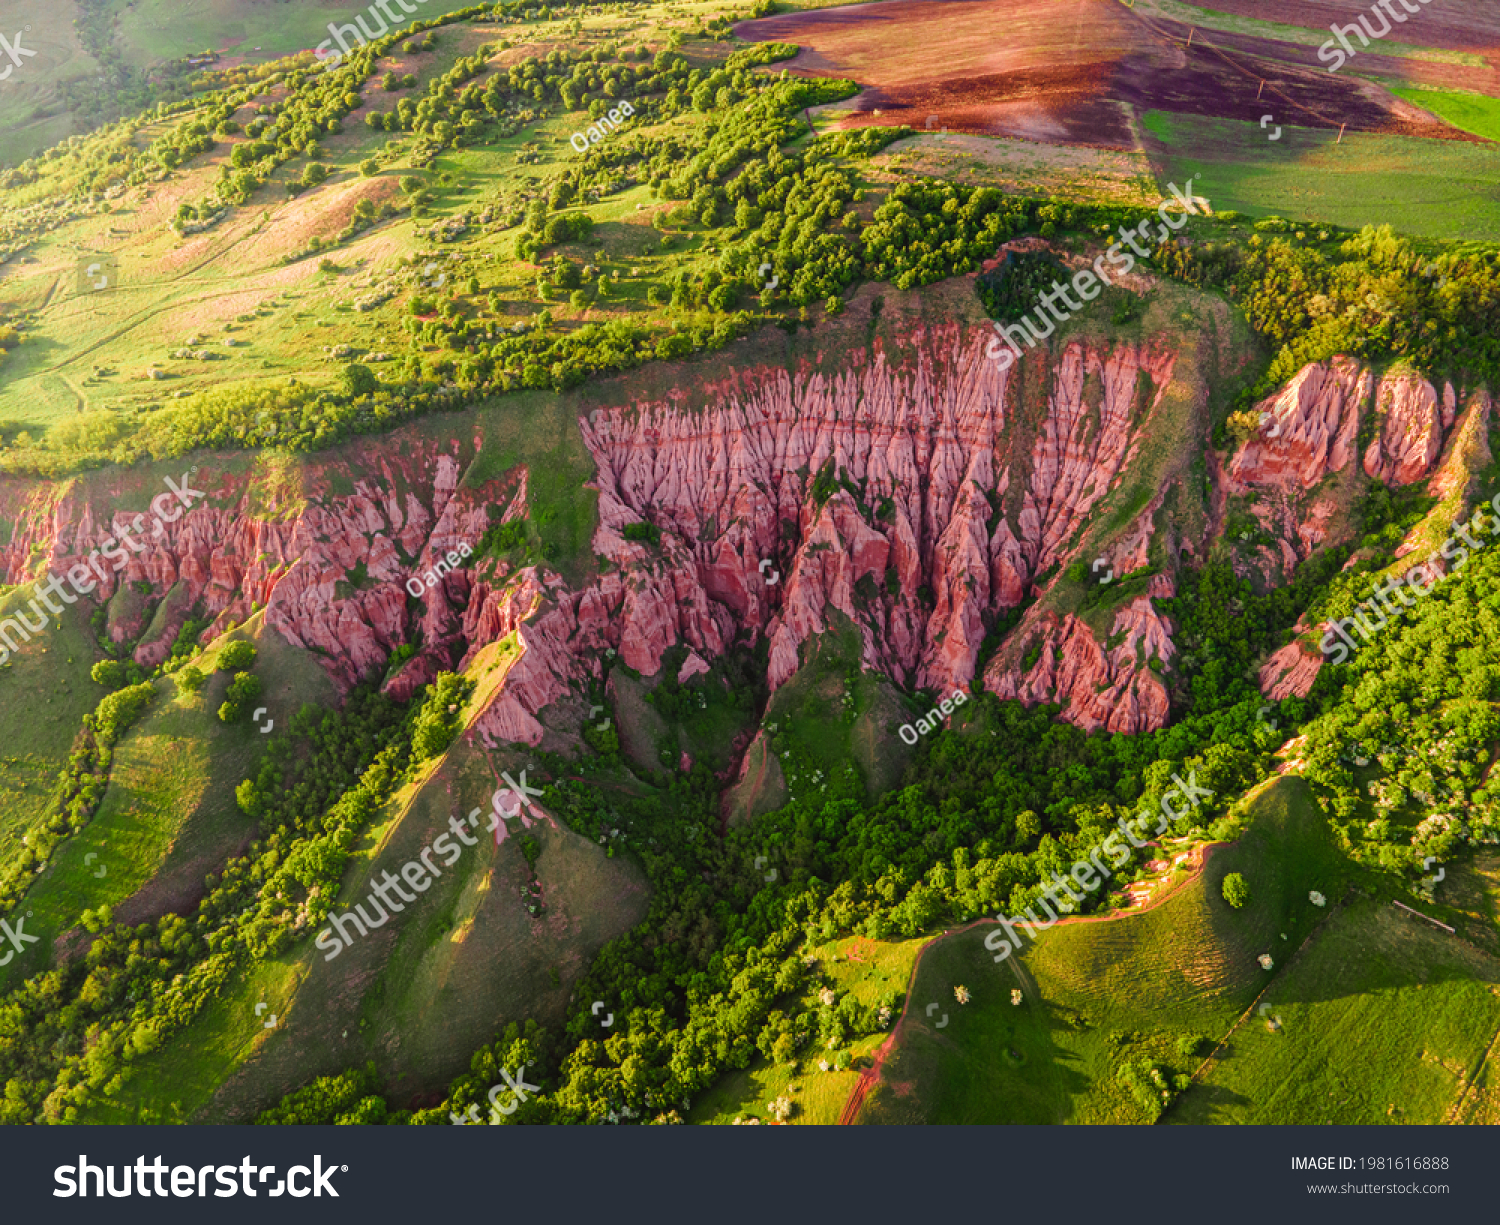 stock-photo-aerial-photography-of-the-re